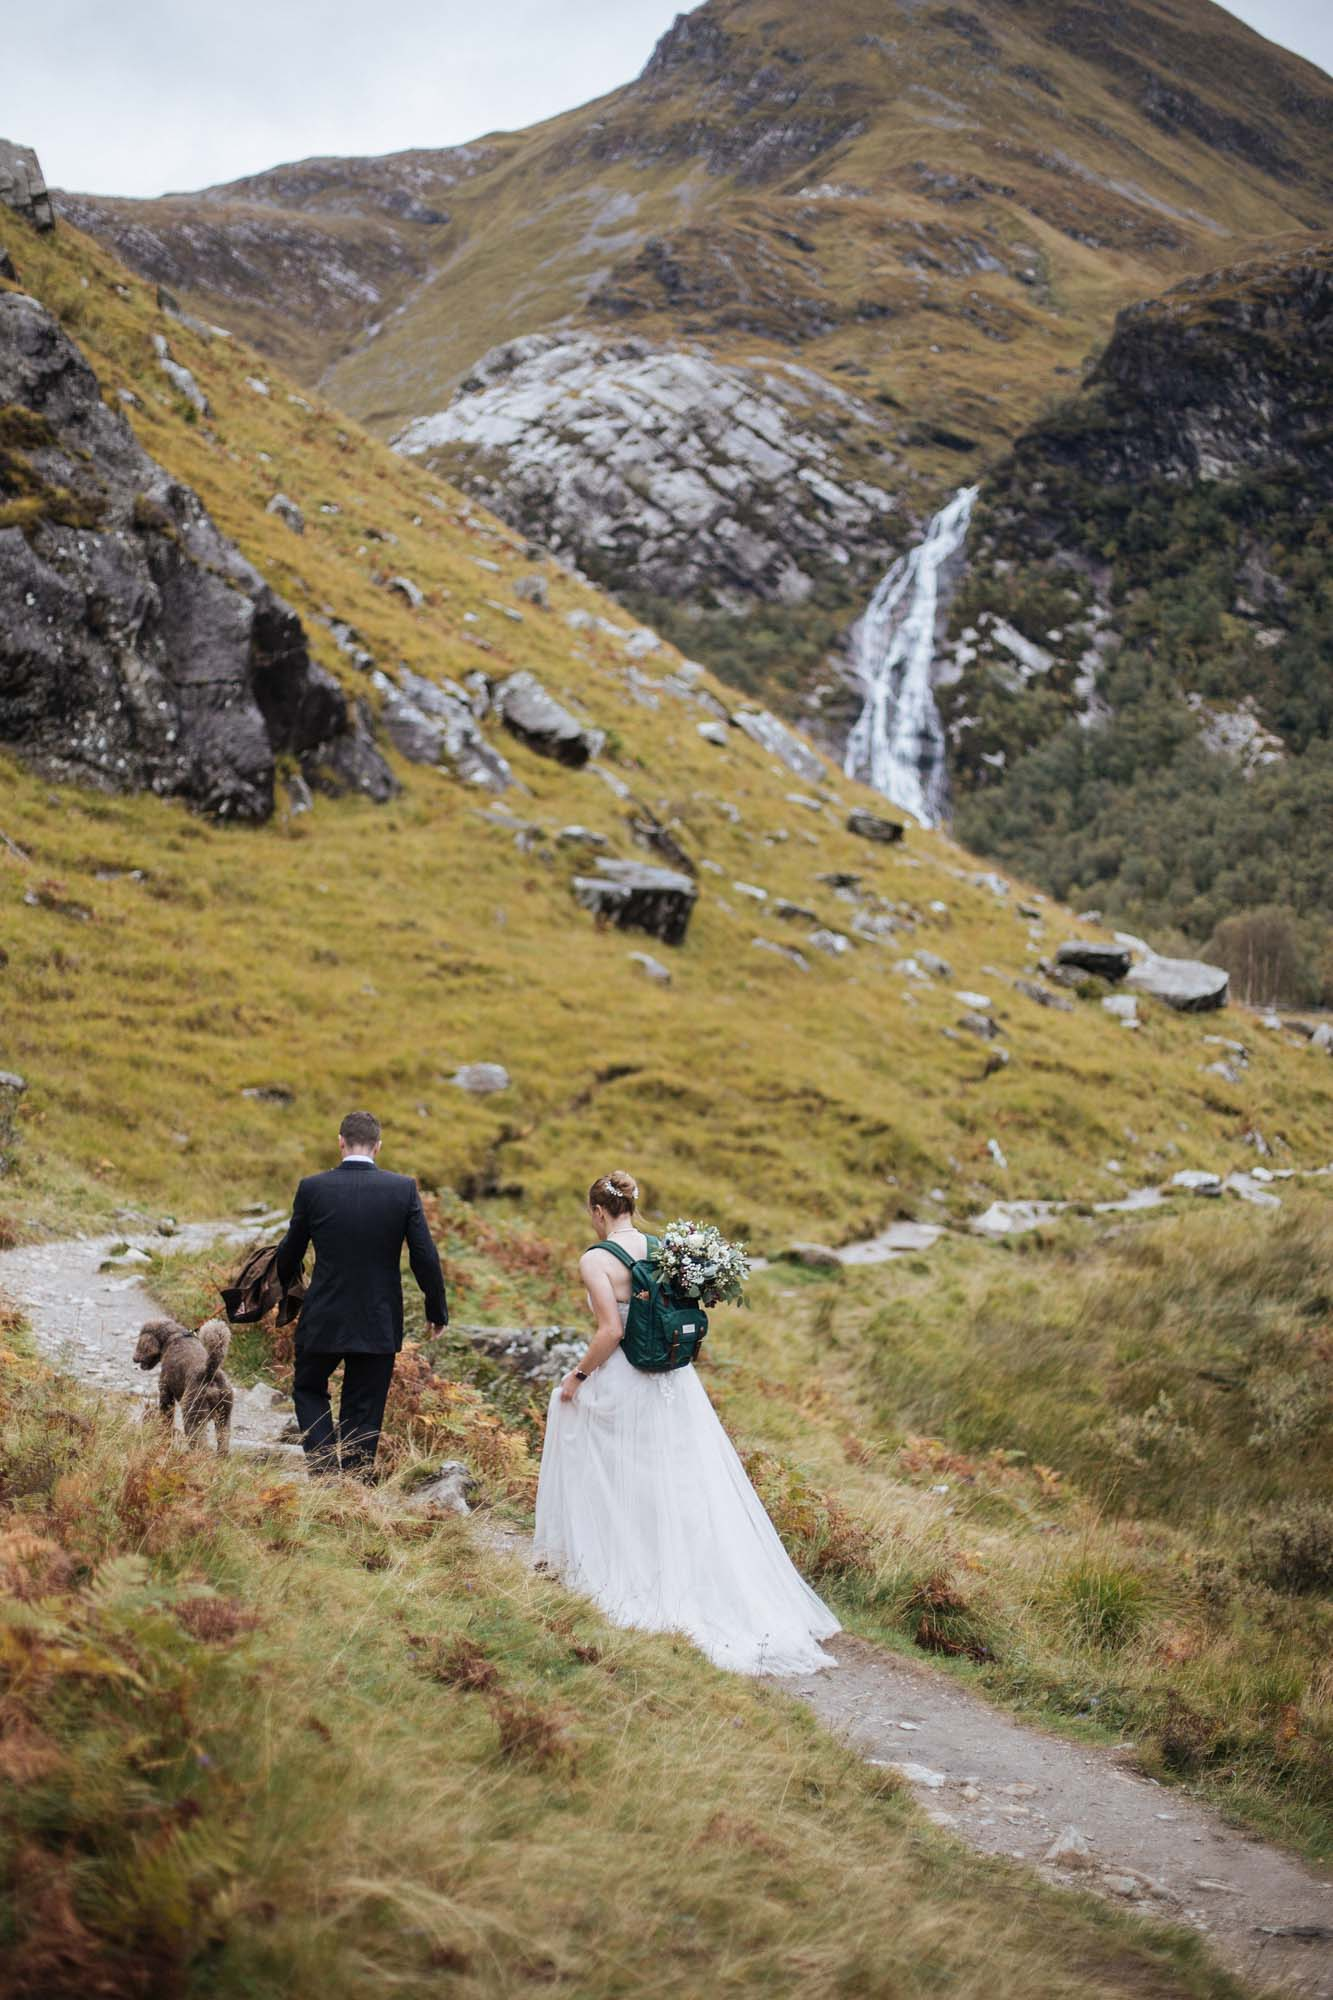 Hiking to a wedding spot